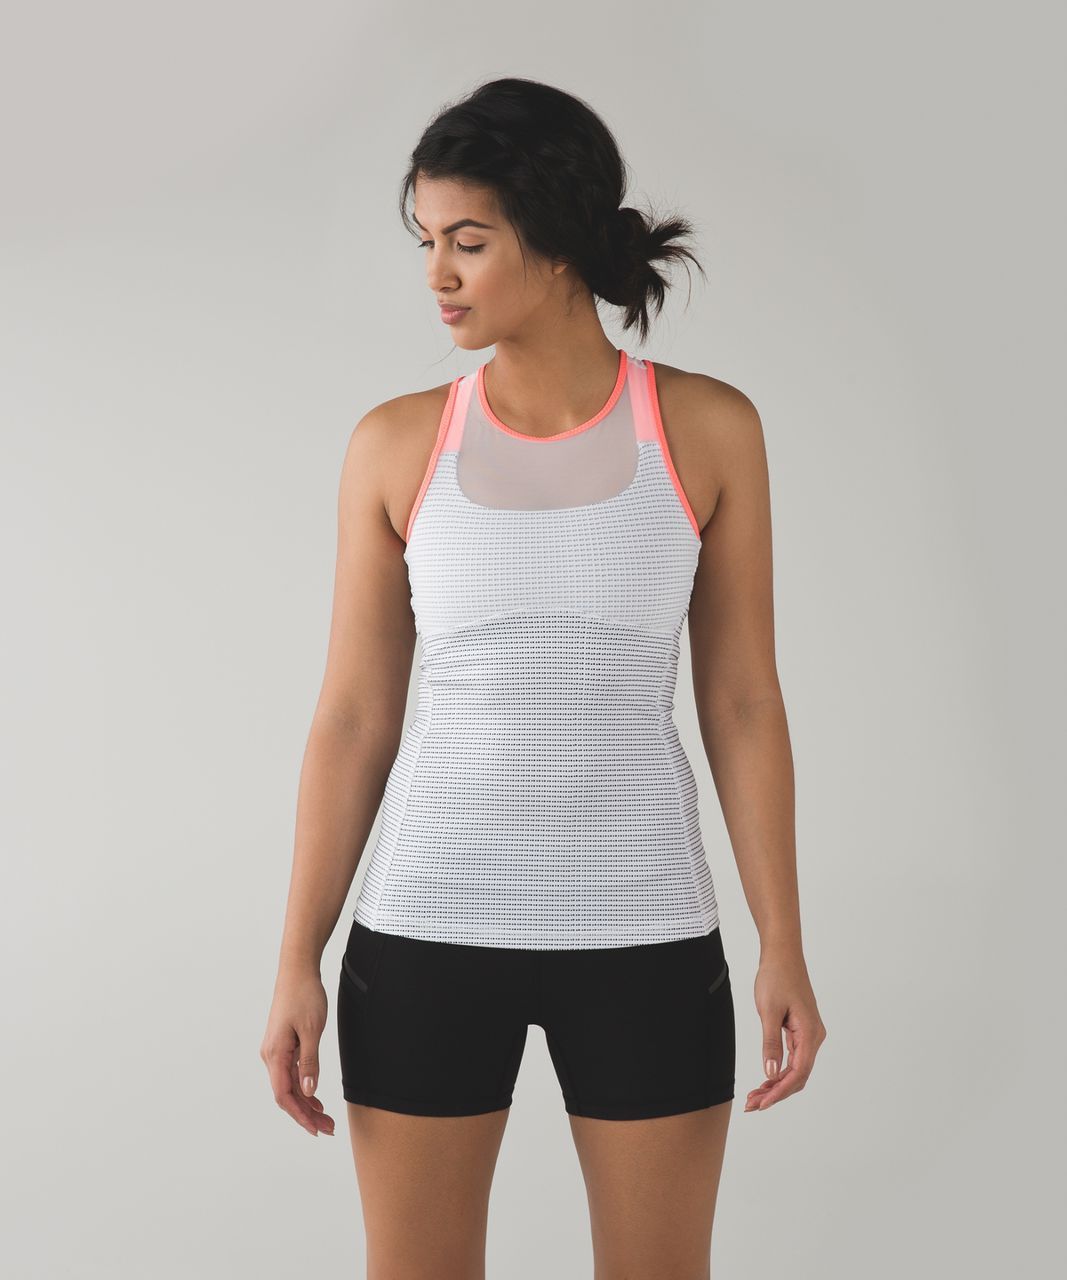 Lululemon Ready, Set, Sweat Tank - Double Dot White Black / Very Light Flare